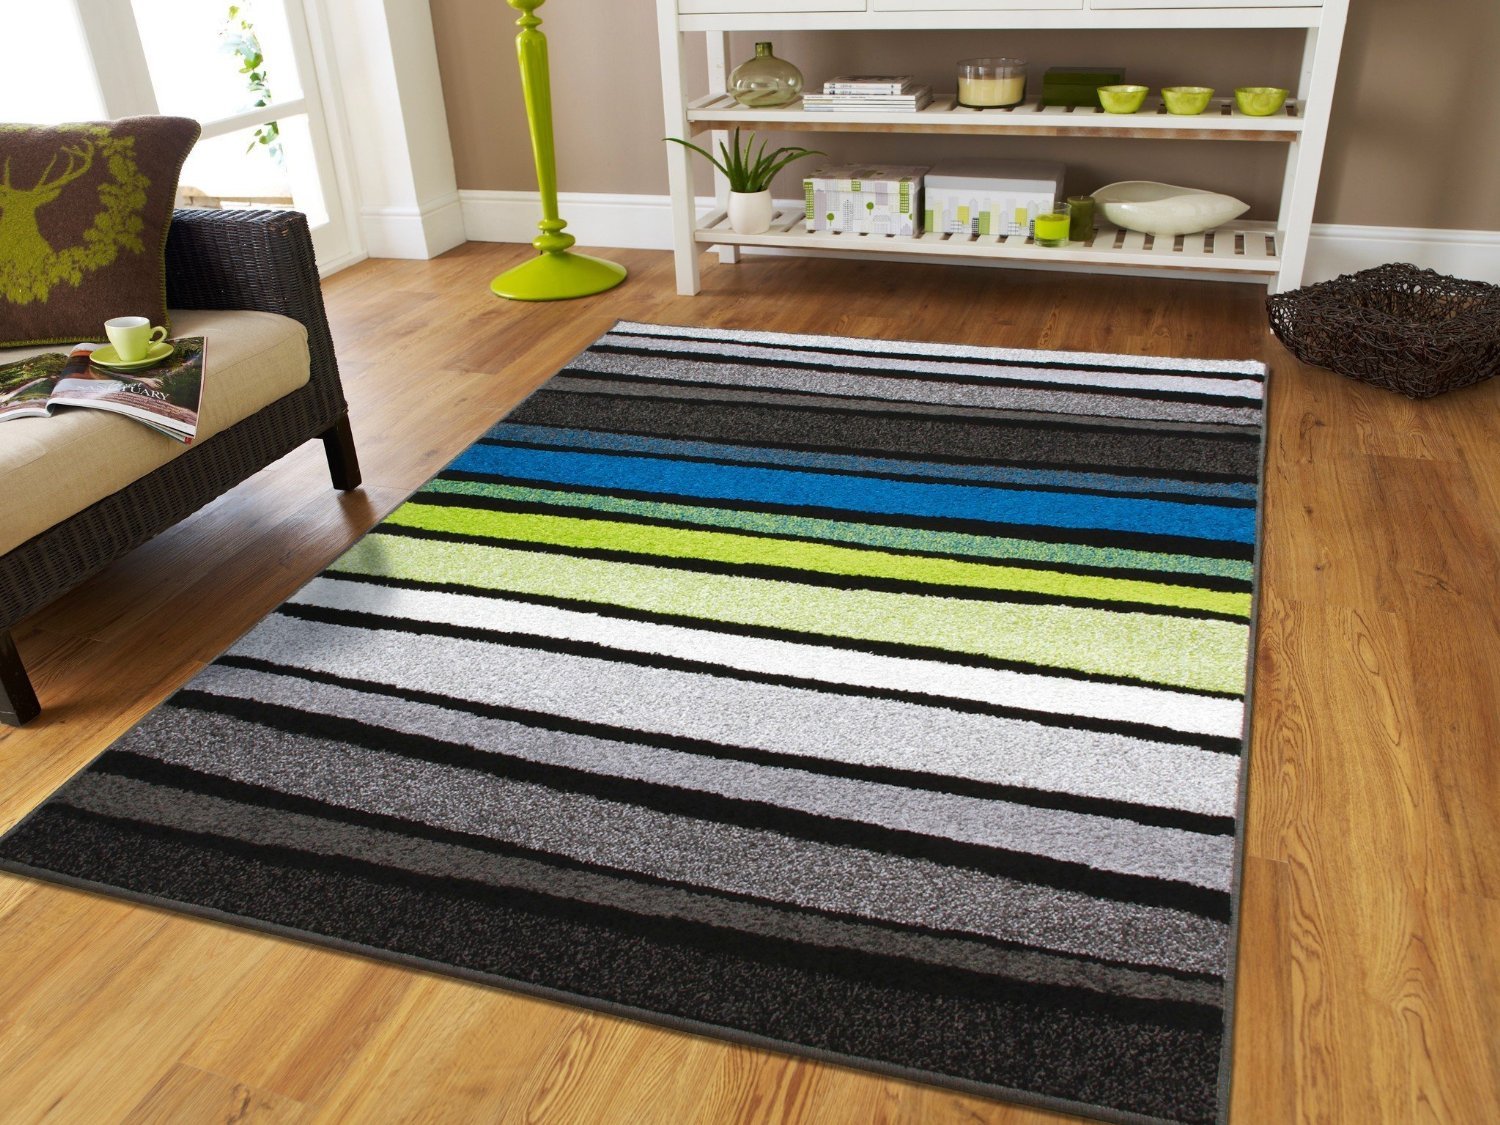 New fashion large 8x11 striped rug blue rugs clearance 8x10 black turquoise white grey green contemporary